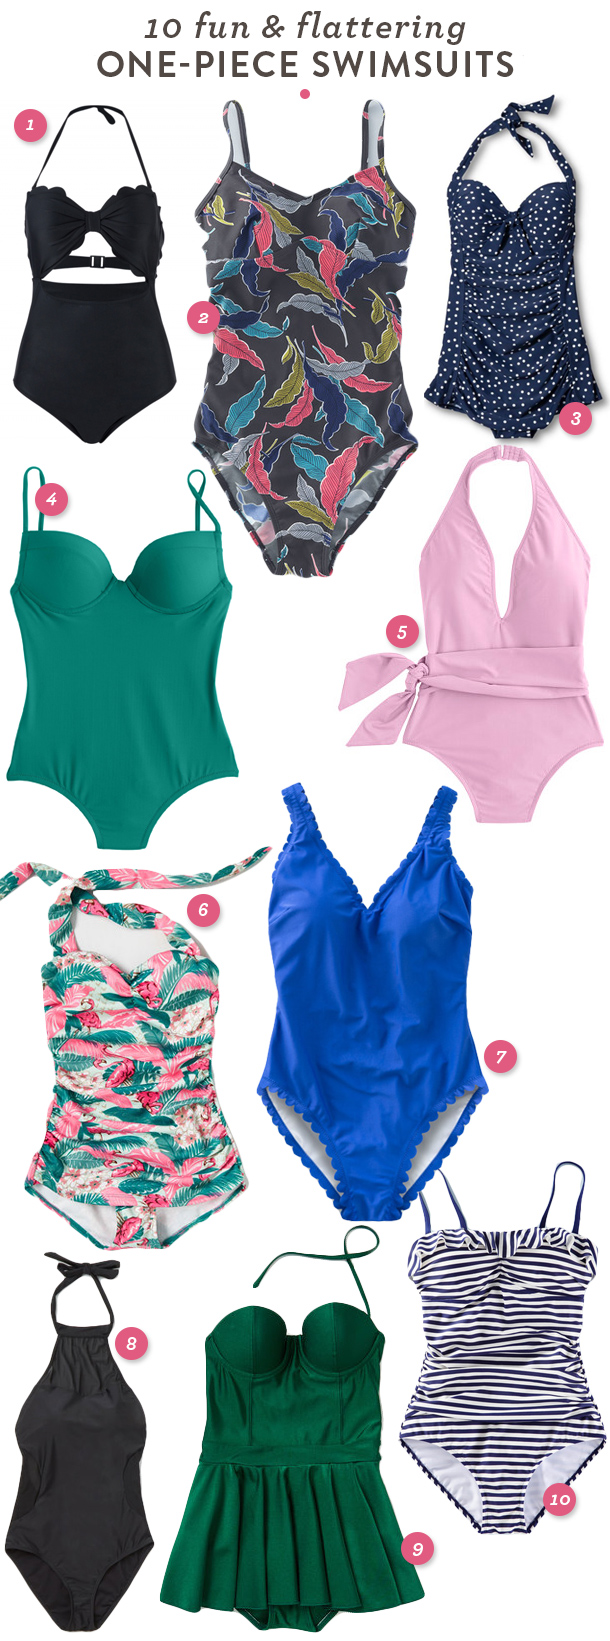 10 great fun and flattering one-piece swimsuits that you'll love to wear this summer